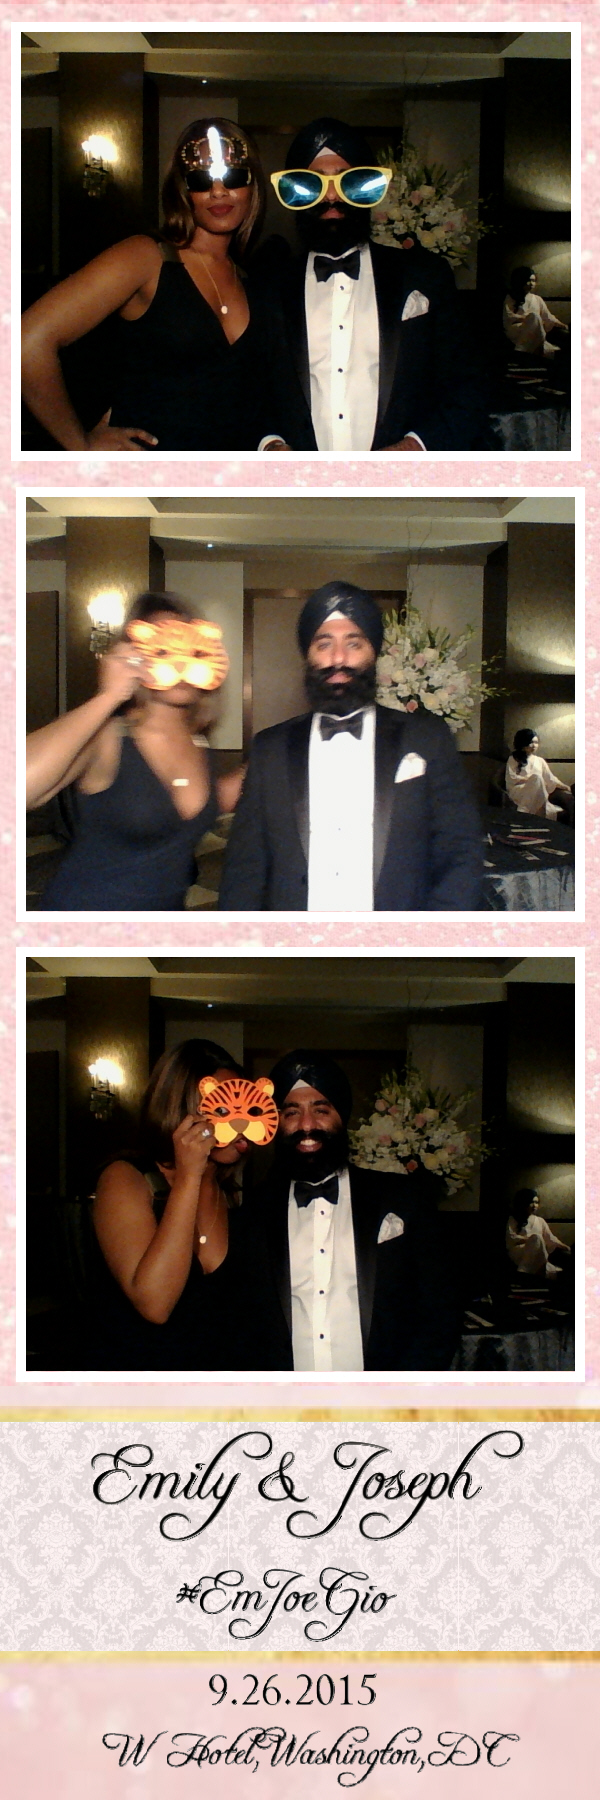 Guest House Events Photo Booth E&J (27).jpg